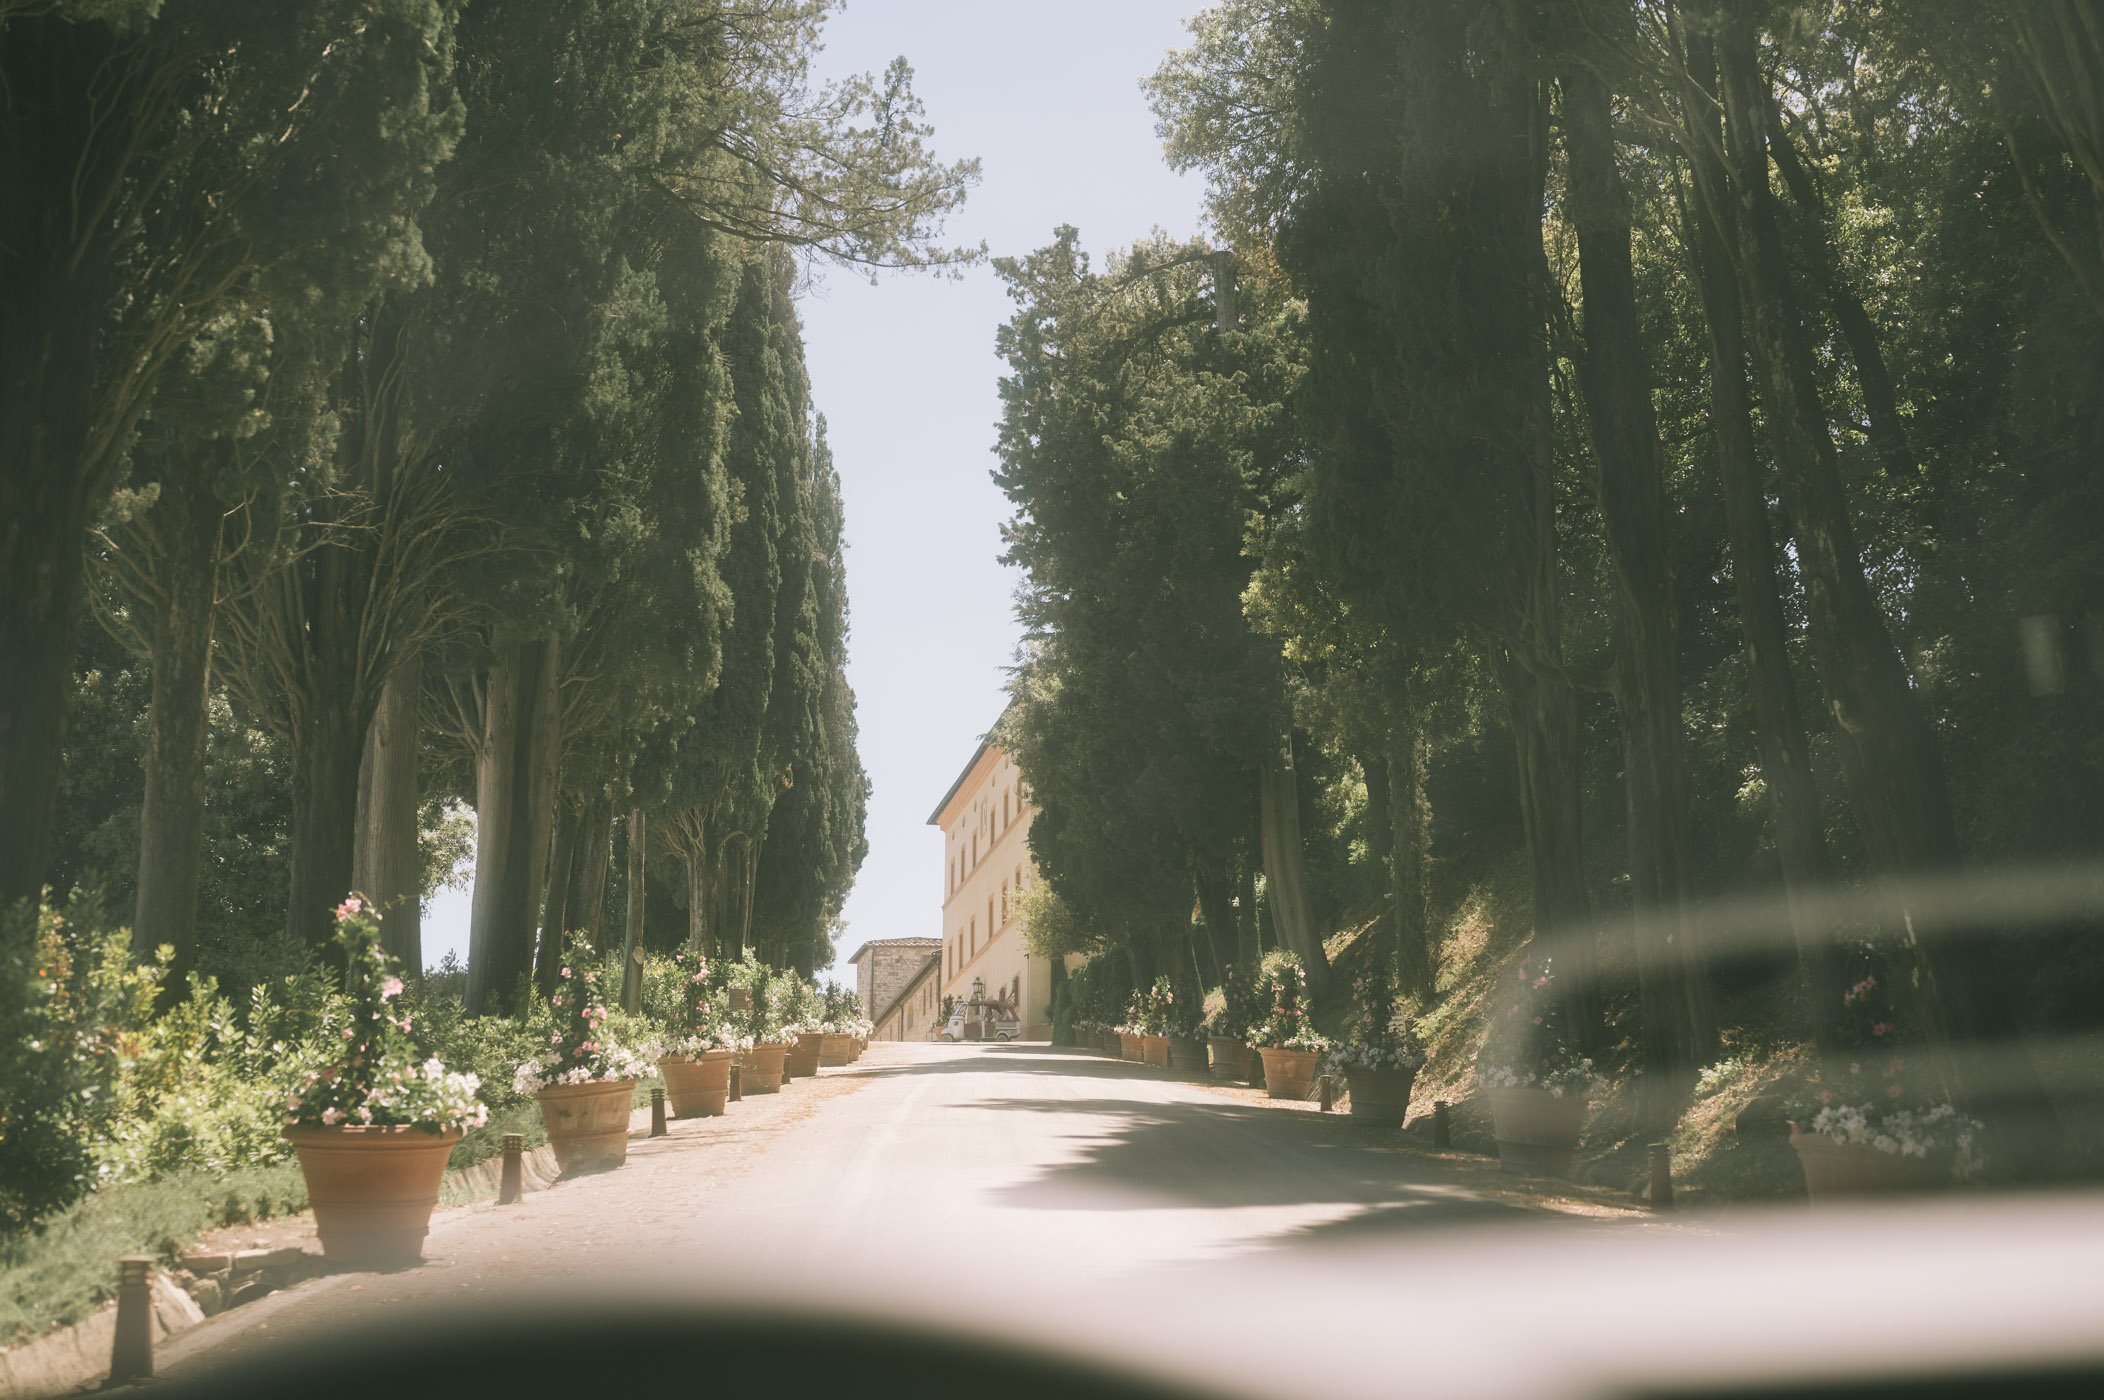 The drive up to Belmond Castello di Casole luxury hotel and estate in Tuscany Italy